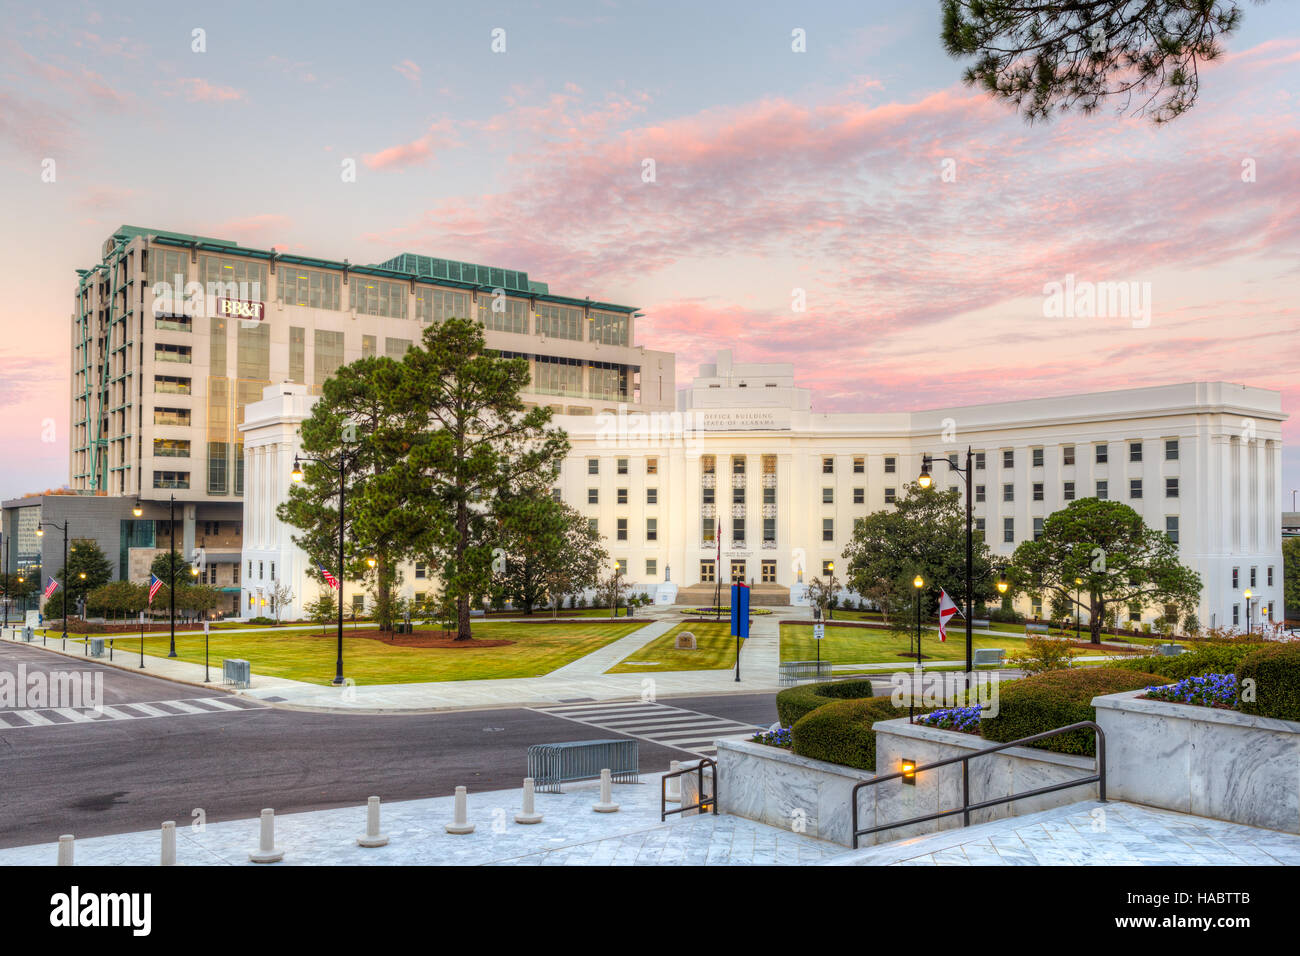 The Lurleen Wallace Office Building shortly before sunrise in Montgomery, Alabama. - Stock Image